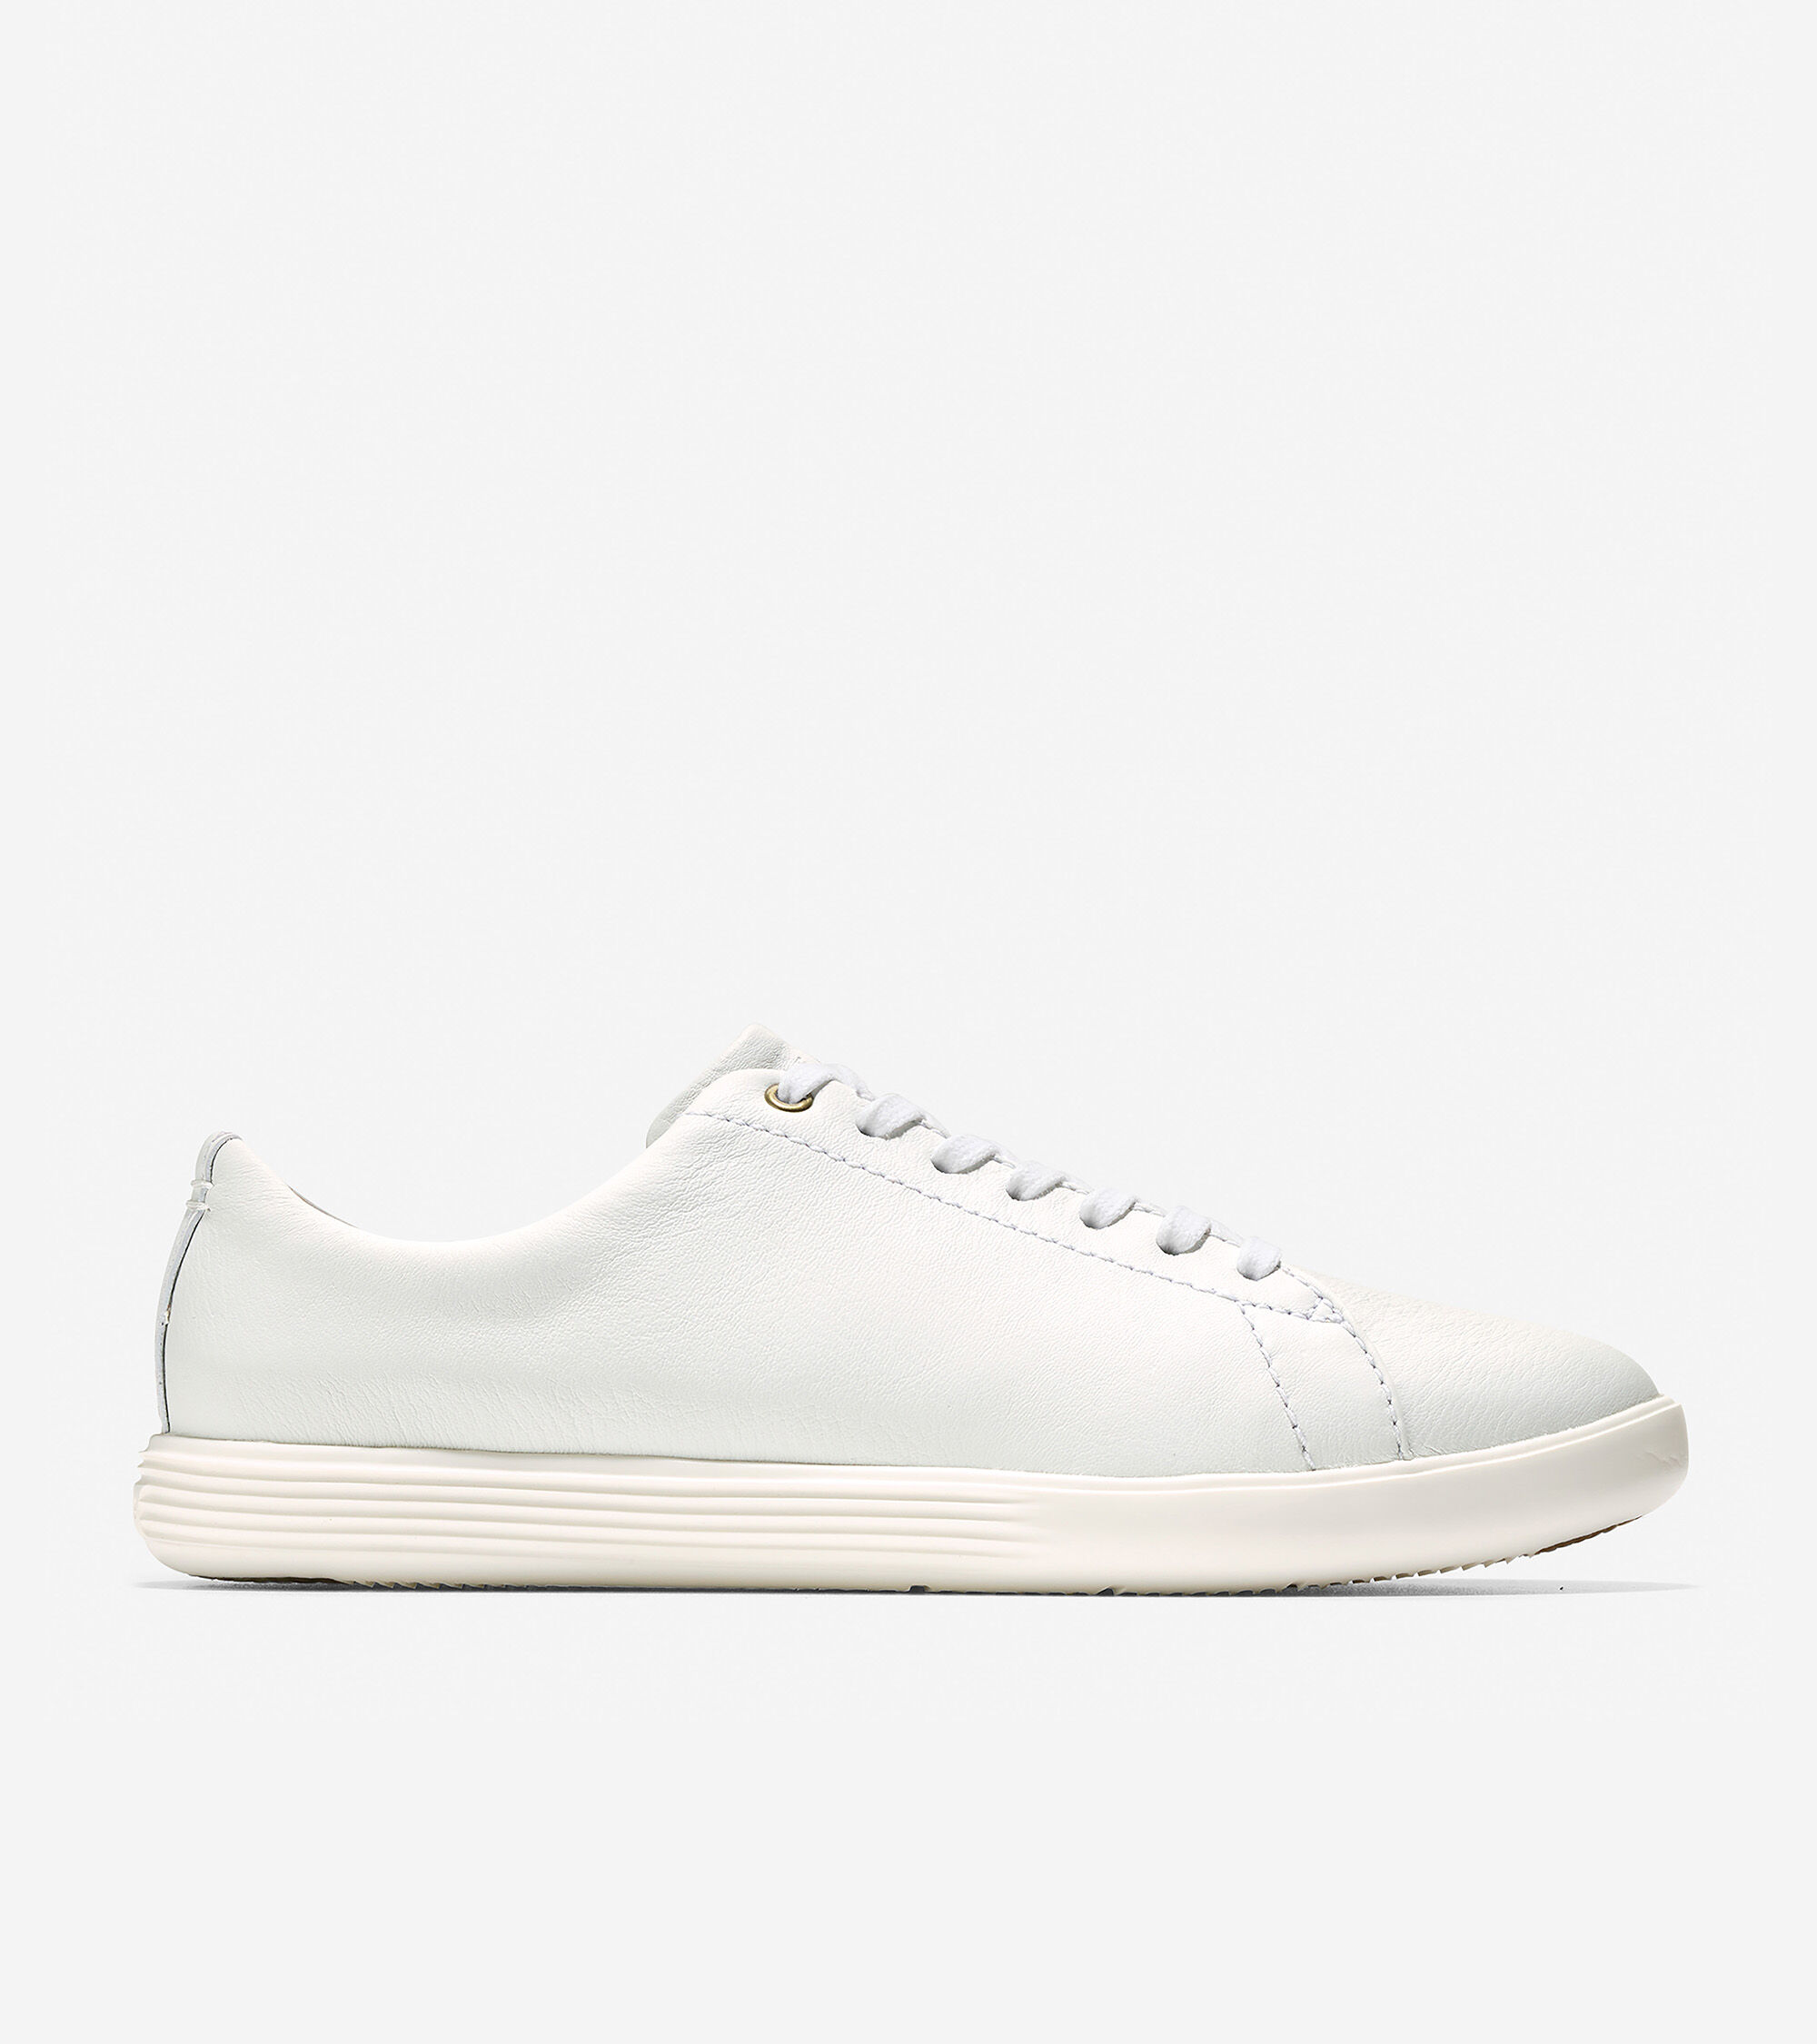 Cole Haan Grand Crosscourt II Sneaker WOMEN WHITE LEATHER